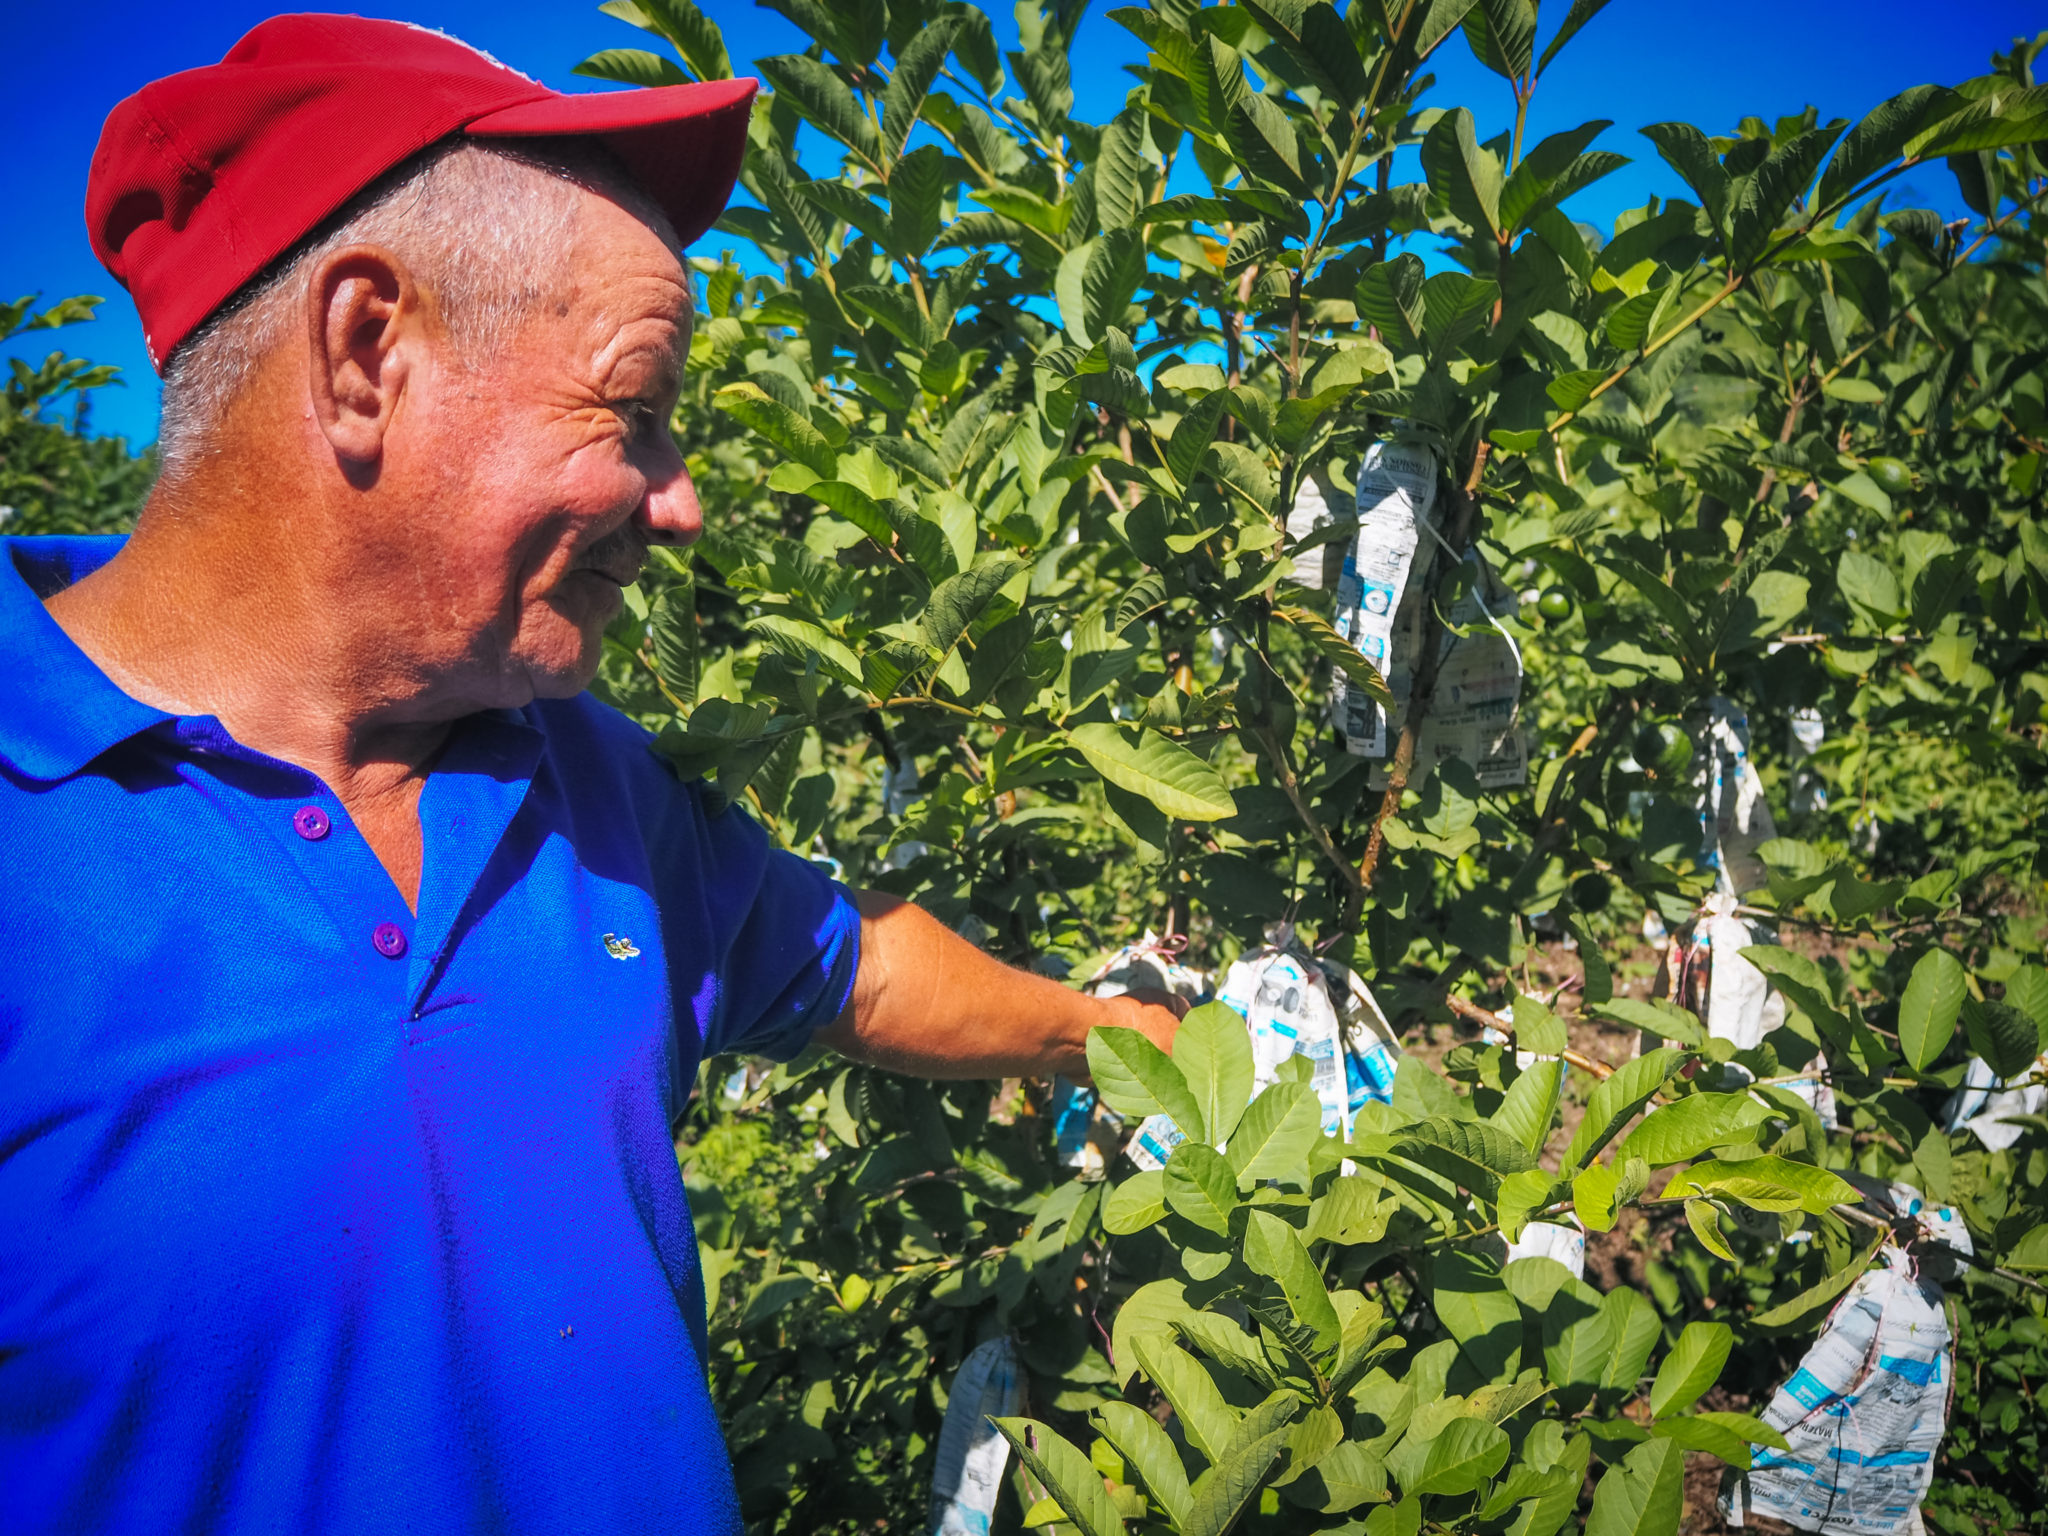 A Nicaraguan farmer proudly shows off his guava crop.